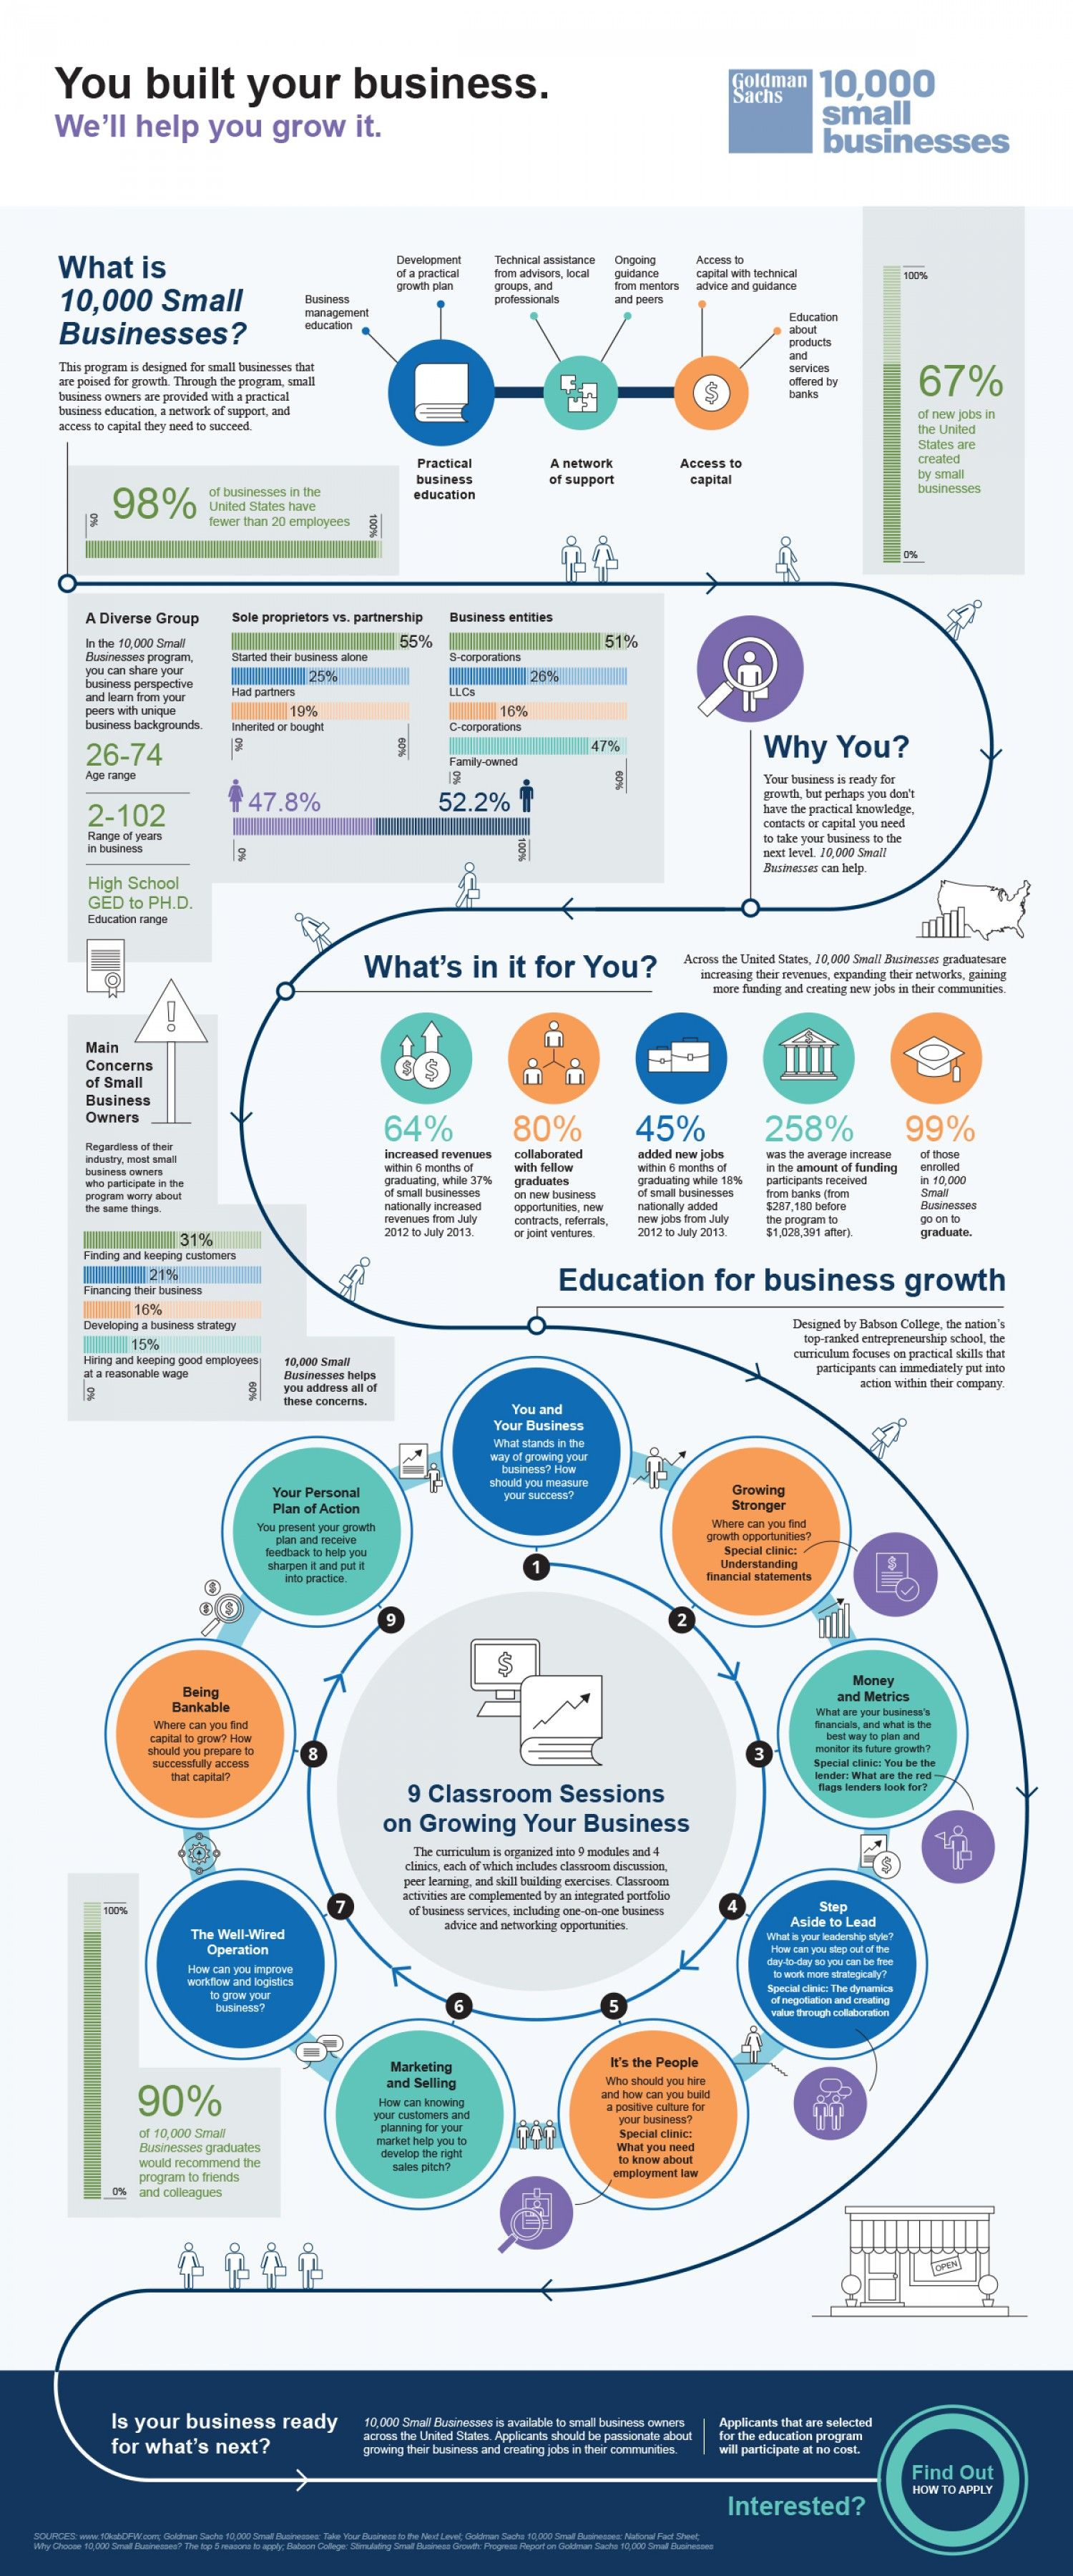 Goldman Sachs 10 000 Small Busineses Small Business Infographic Business Growth Plan Business Infographic